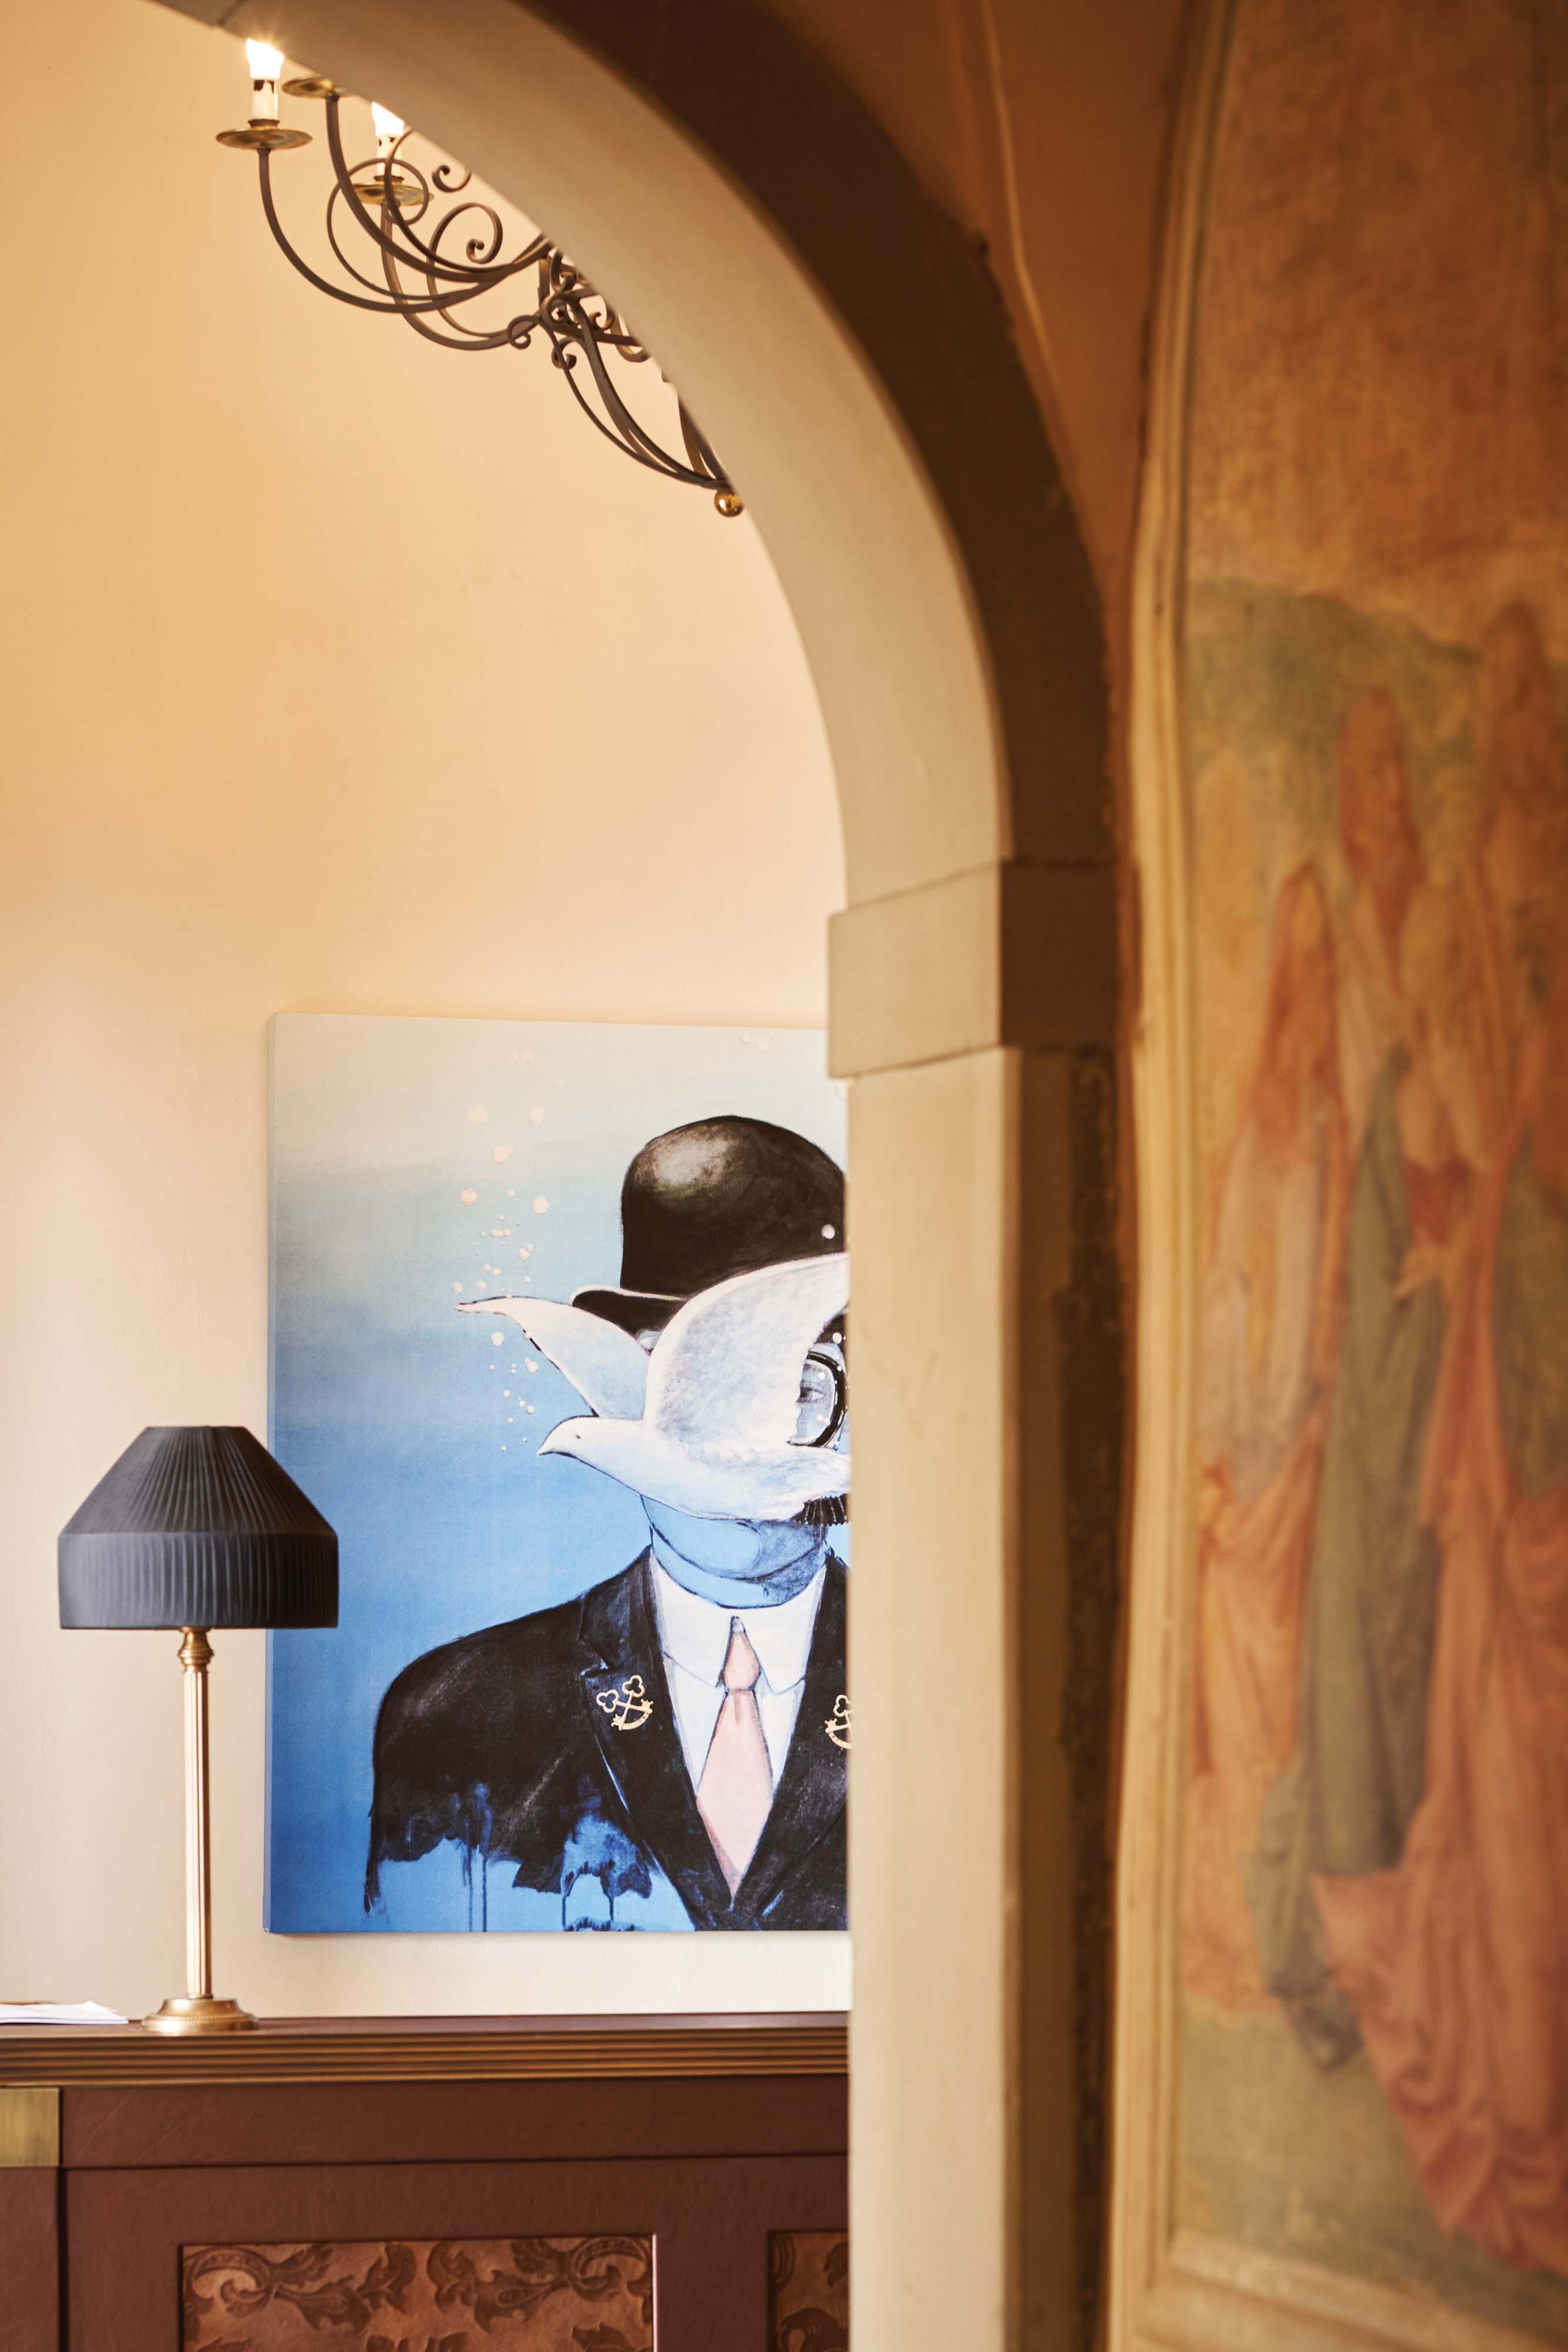 Street art and Renaissance blend in perfection at Belmond Villa San Michele